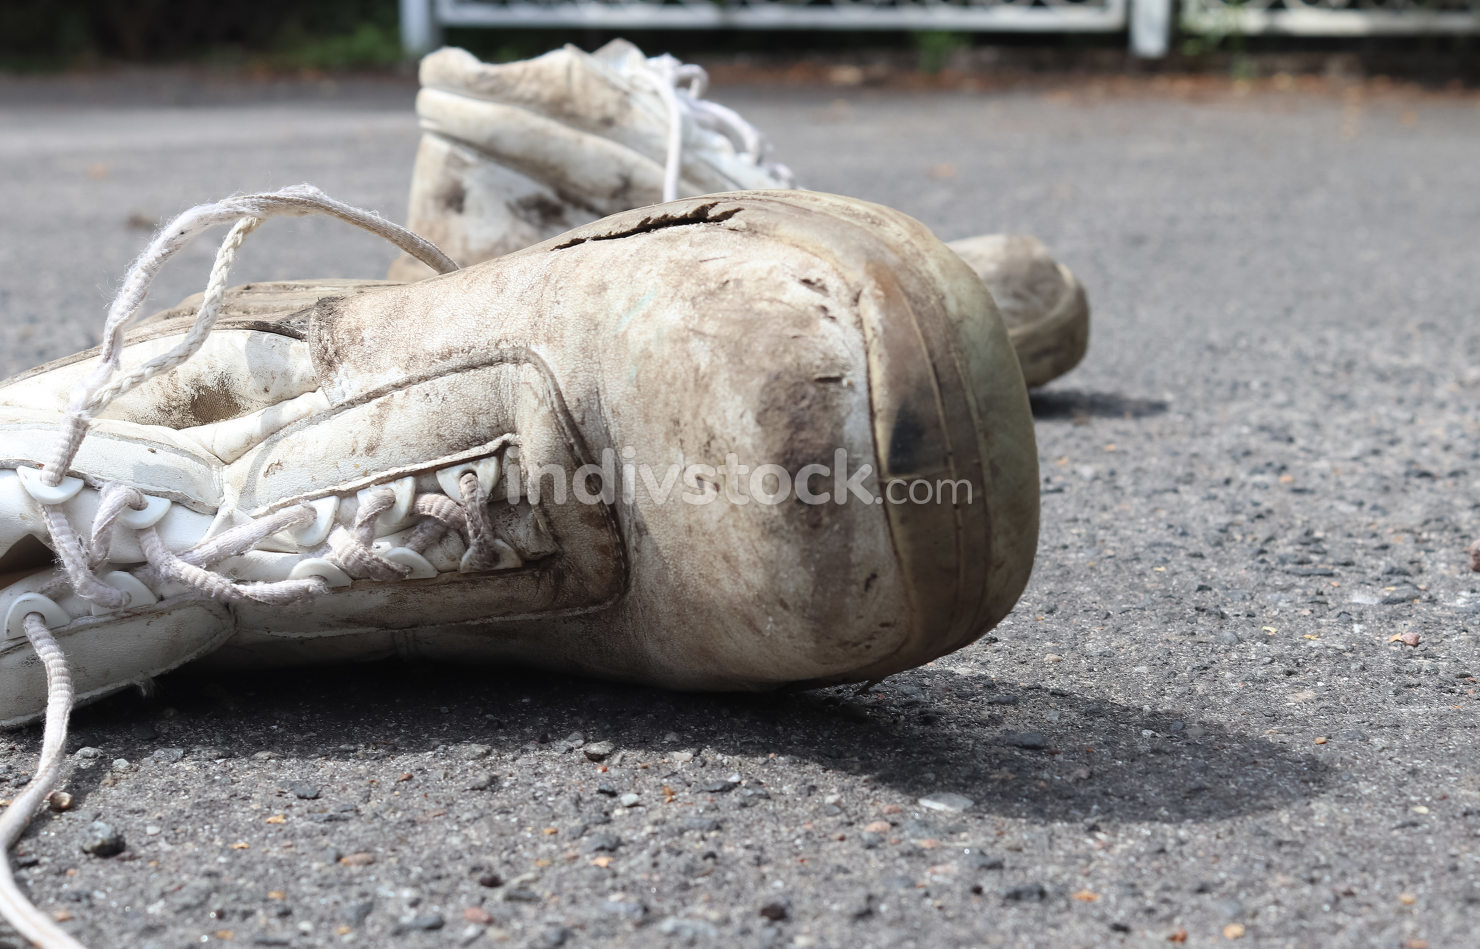 Concept of old shoes left on an ashpalt road with copy space for